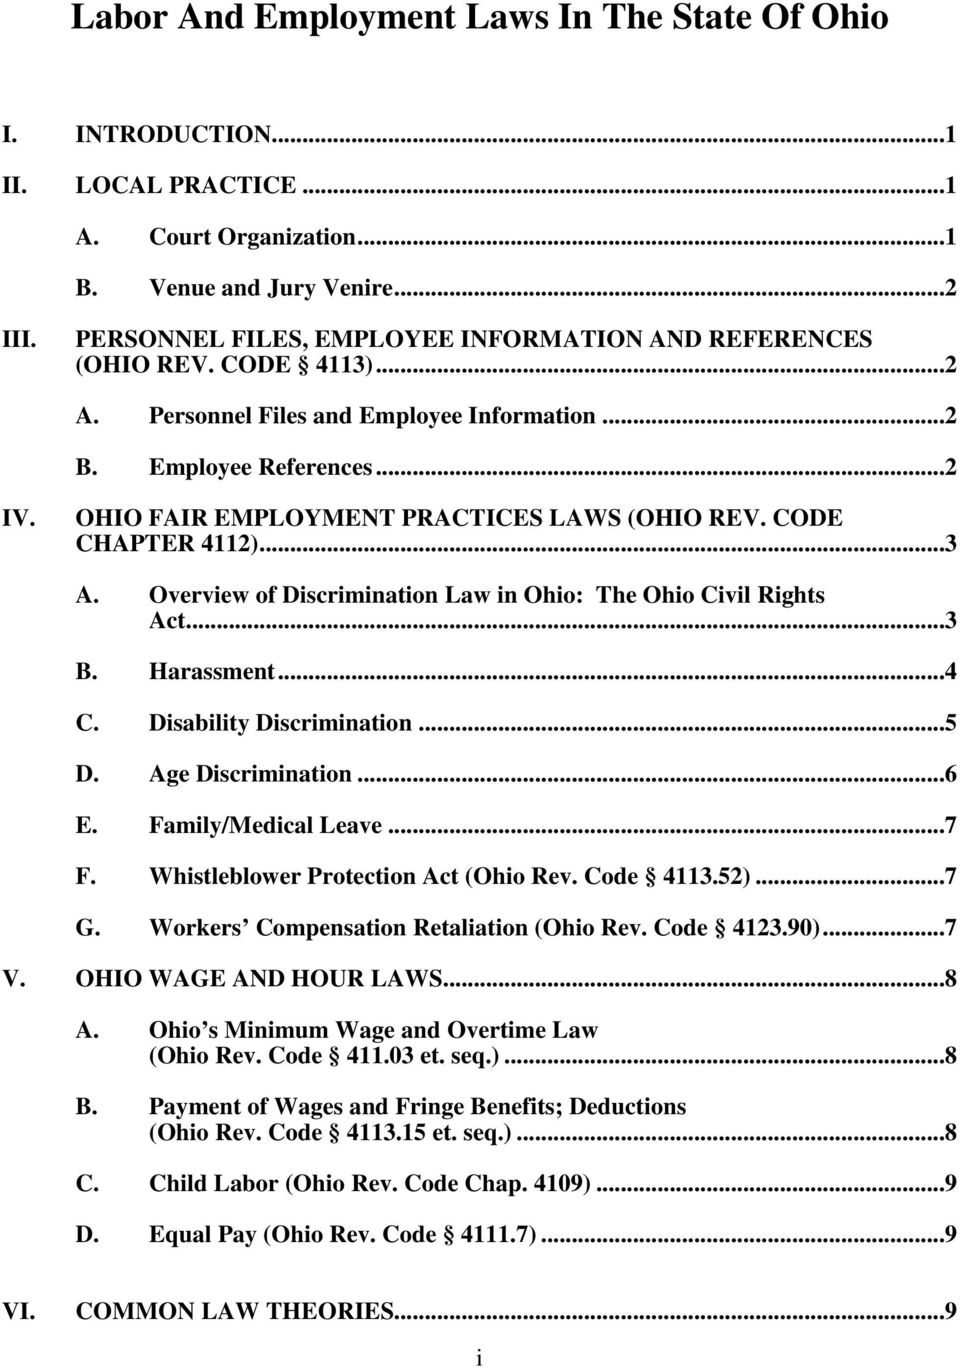 OHIO FAIR EMPLOYMENT PRACTICES LAWS (OHIO REV. CODE CHAPTER 4112)...3 A. Overview of Discrimination Law in Ohio: The Ohio Civil Rights Act...3 B. Harassment...4 C. Disability Discrimination...5 D.